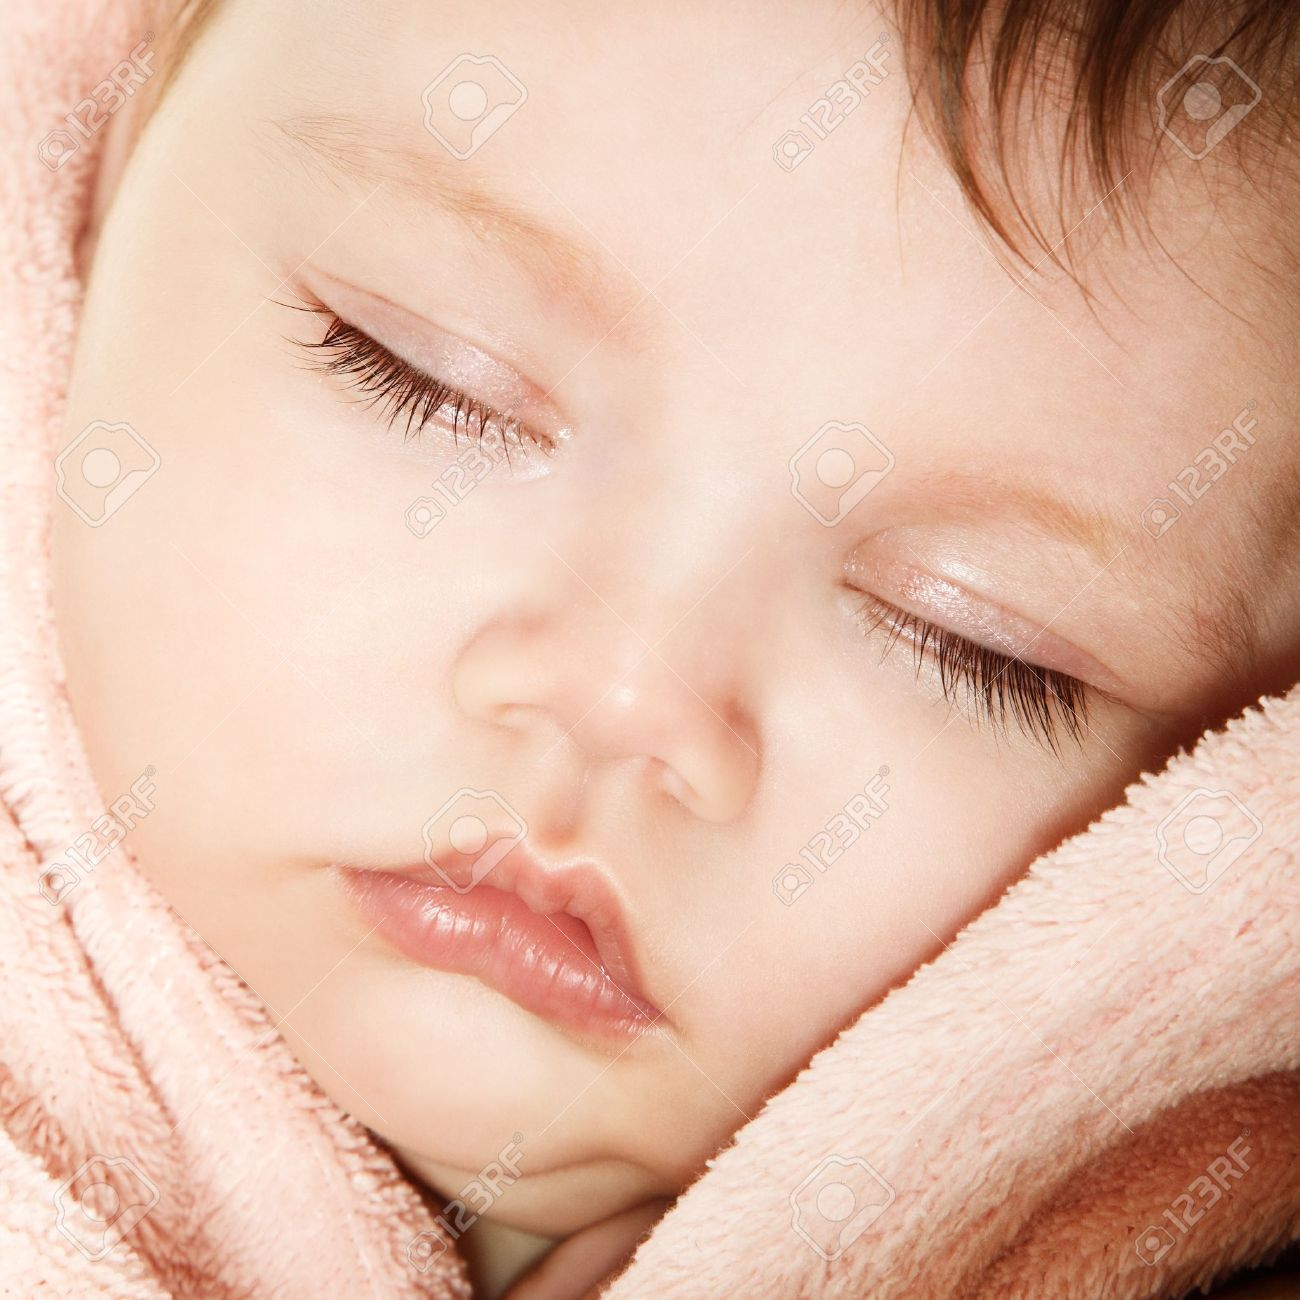 http://previews.123rf.com/images/kho/kho1303/kho130300075/18207665-cute-infant-baby-sleeping-beautiful-kid-s-face-closeup-studio-shot-Stock-Photo.jpg